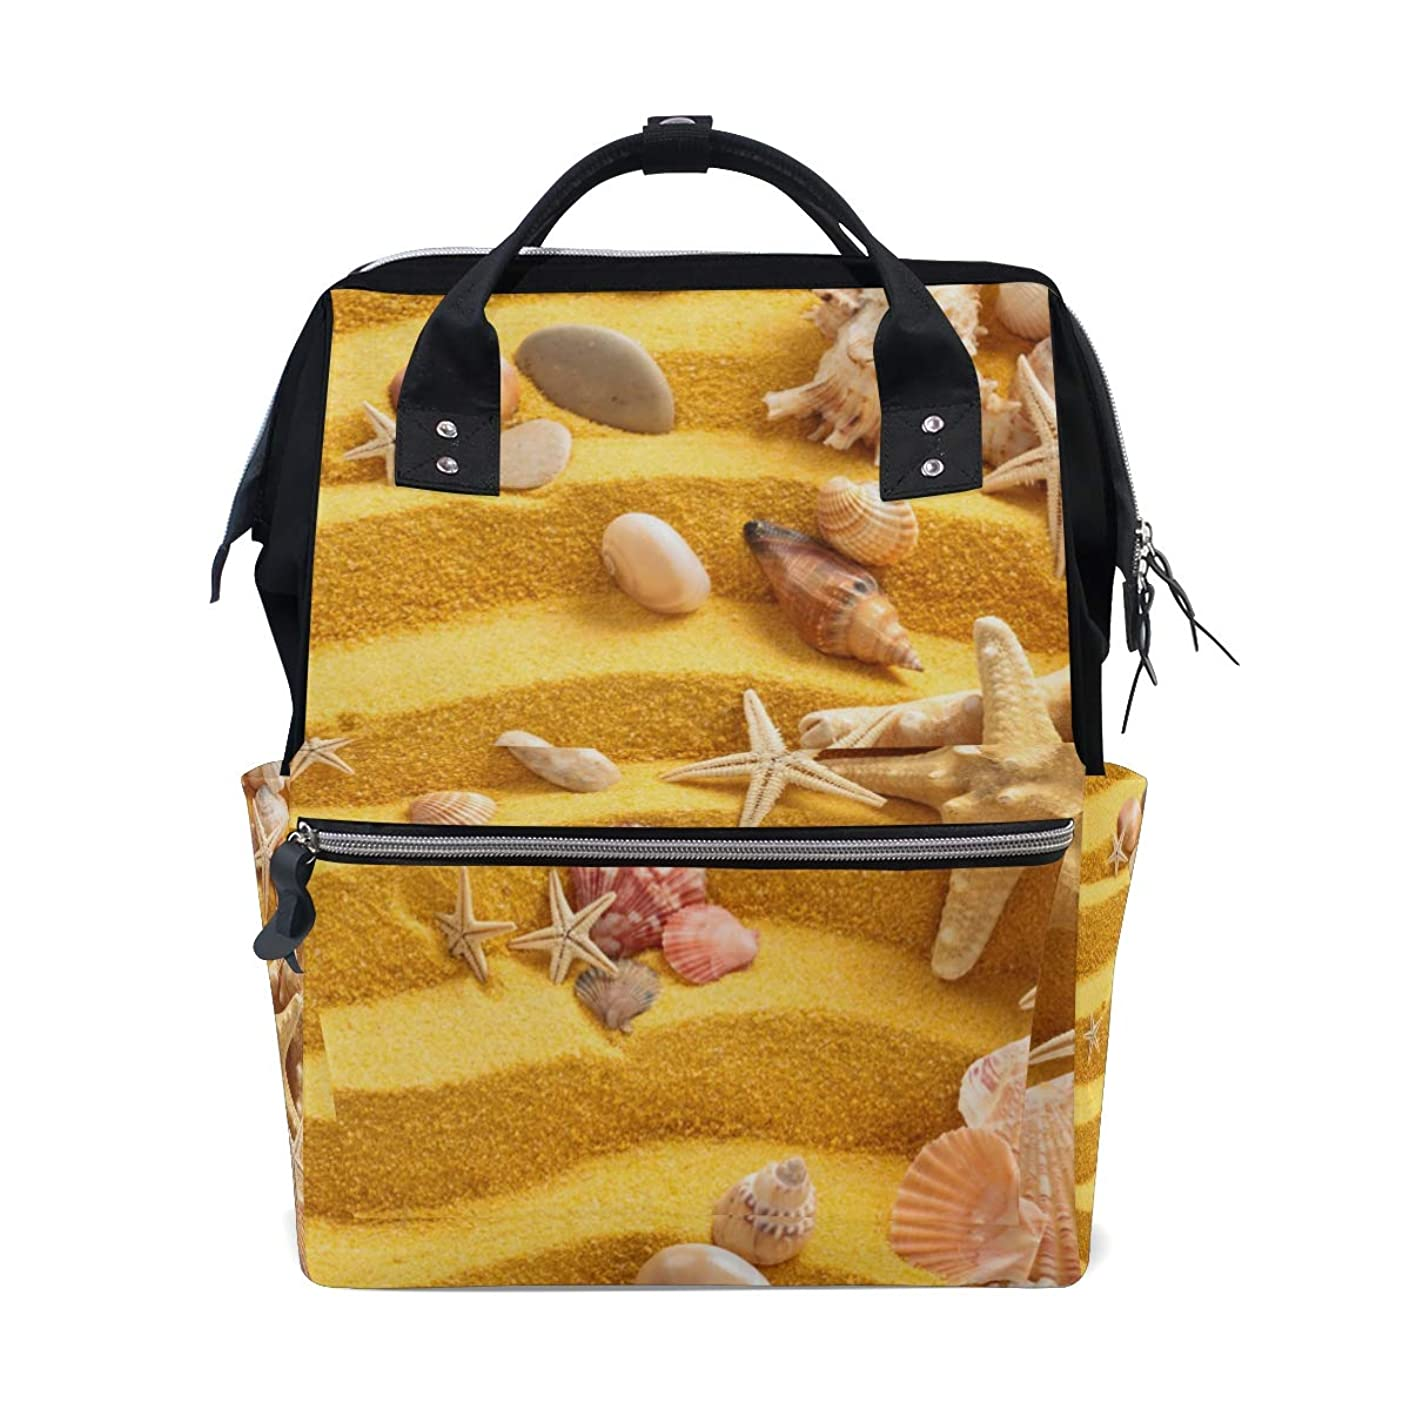 Yellow Sand Shells Starfishes School Backpack Large Capacity Mummy Bags Laptop Handbag Casual Travel Rucksack Satchel For Women Men Adult Teen Children